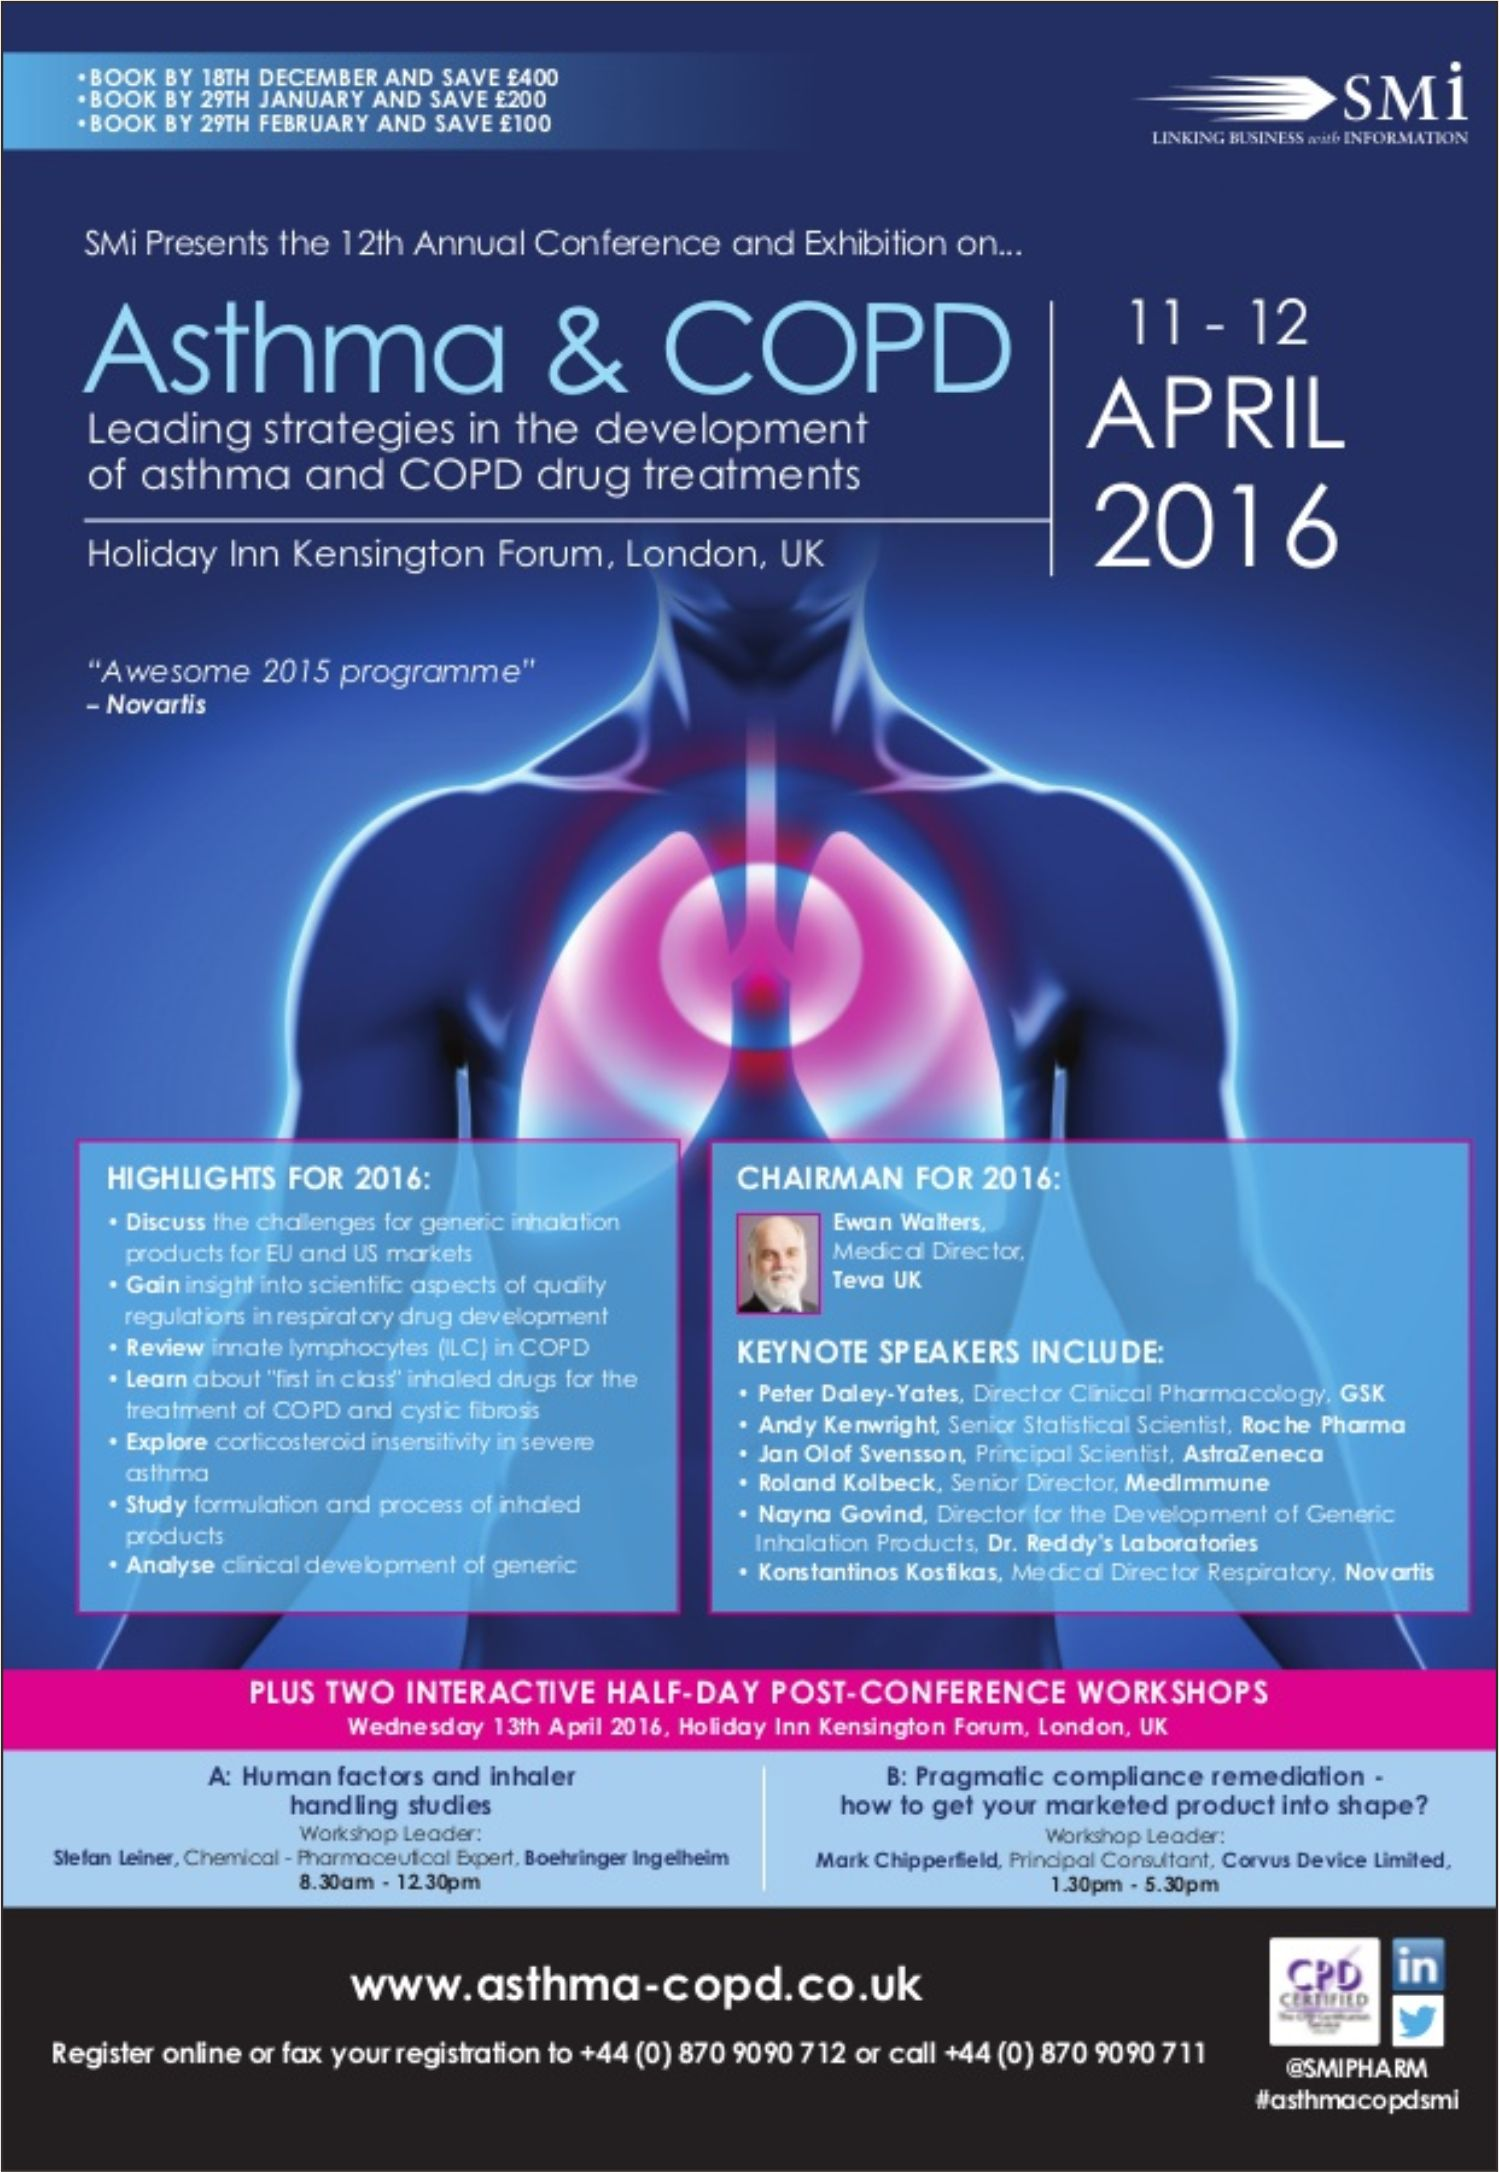 Asthma & COPD 2016